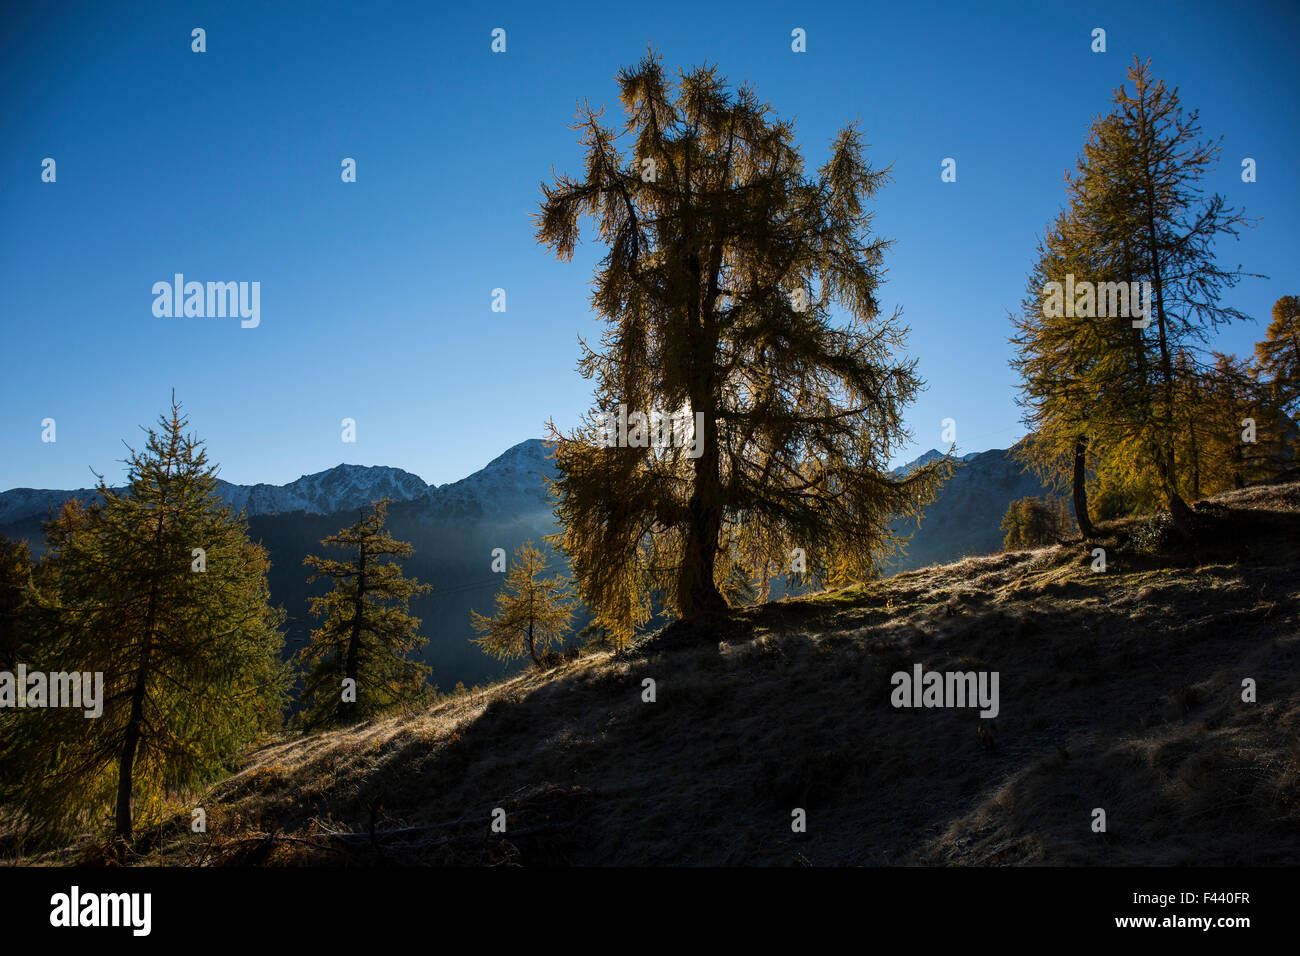 Tree agains rising sun - Stock Image